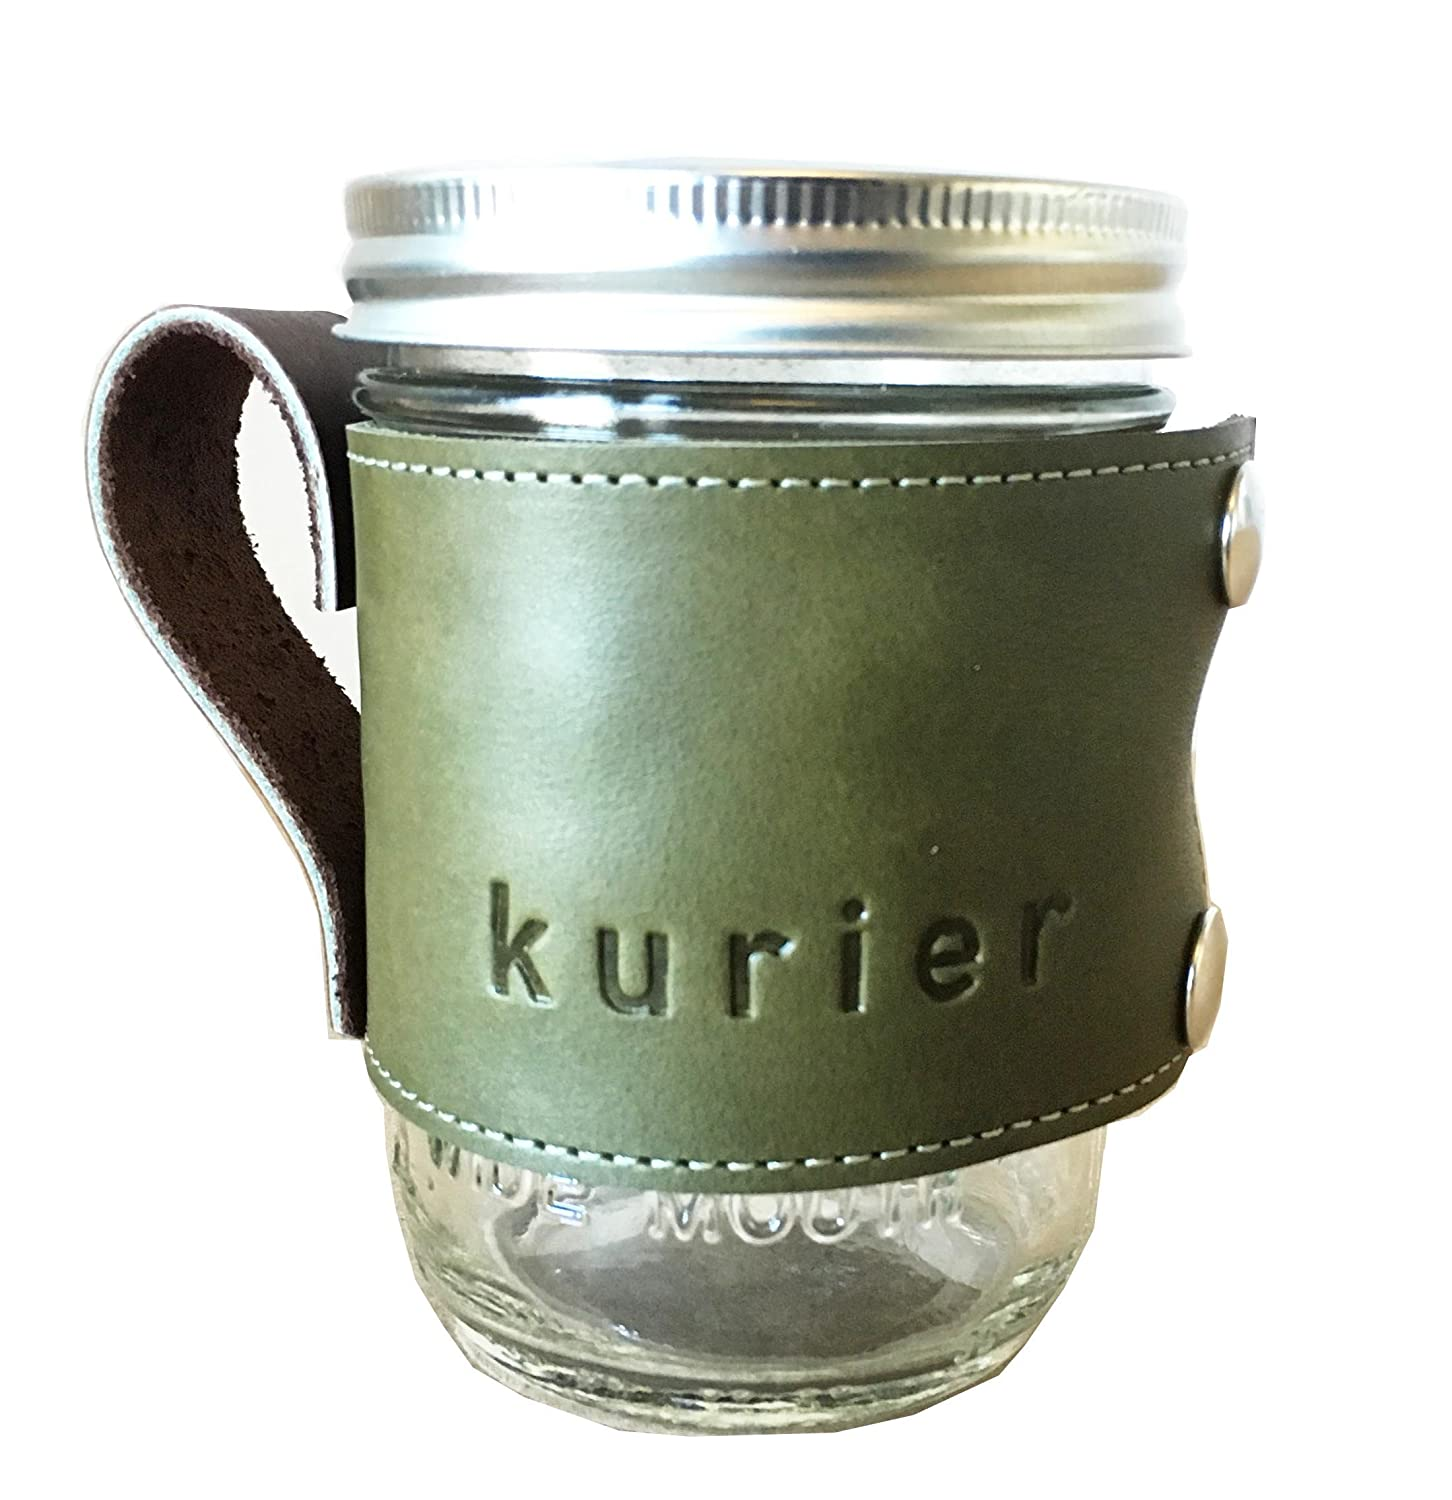 Kurier OLIVE GREEN removable full grain Leather Camp Mug/glass mason ball canning jar travel coffee cup sleeve with handle handmade in USA 16 oz. glass jar included